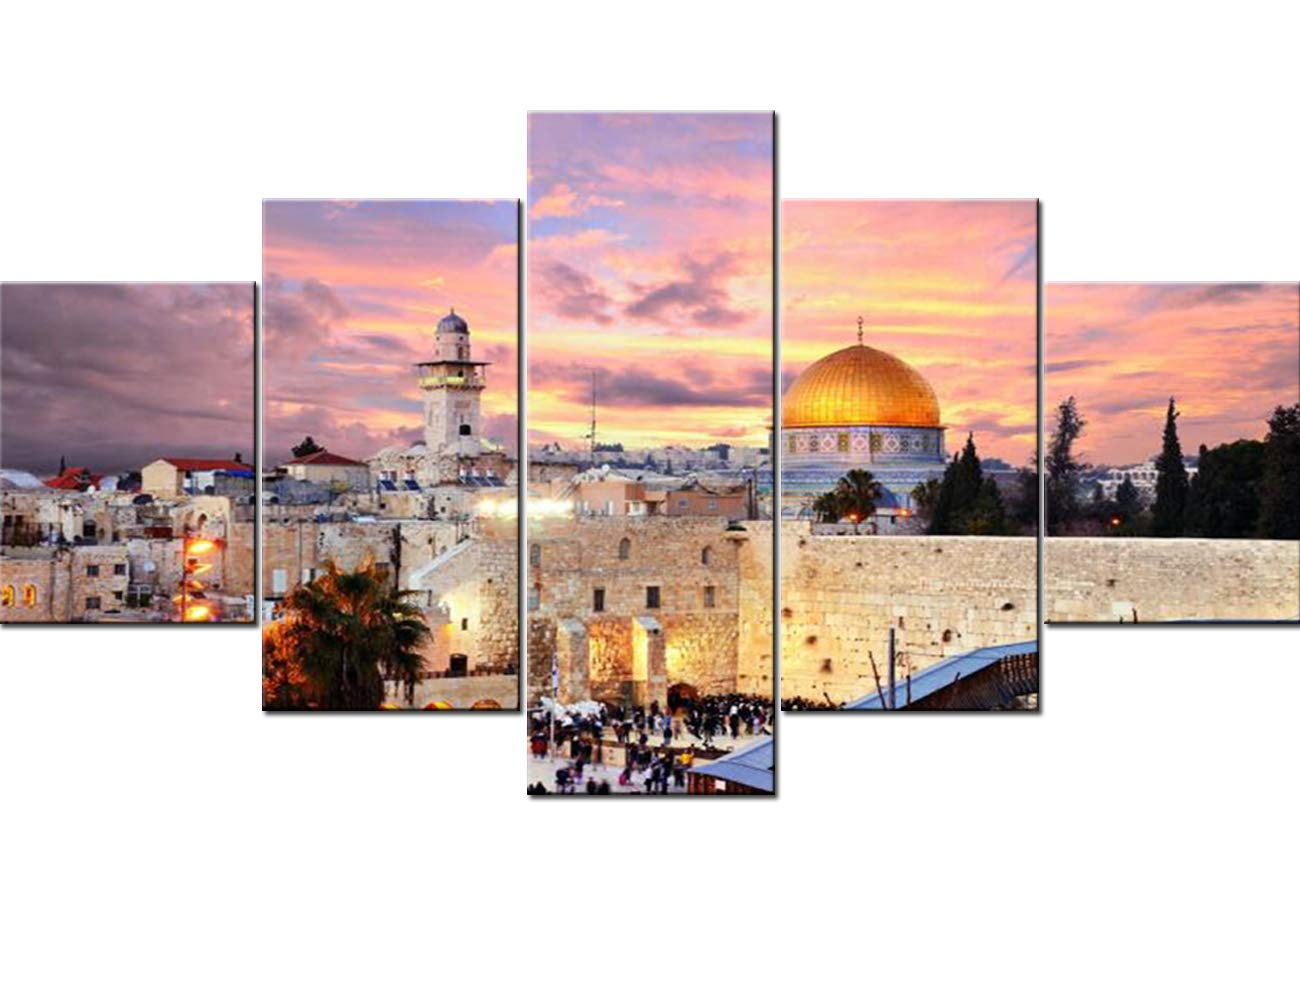 Jerusalem Poster Prints on Canvas 5 Pcs/Multi Panel Wall Art Home Decor for Living Room Israel Paintings Contemporary Pictures Modern Artwork Giclee Wooden Framed Ready to Hang(60''Wx32''H)